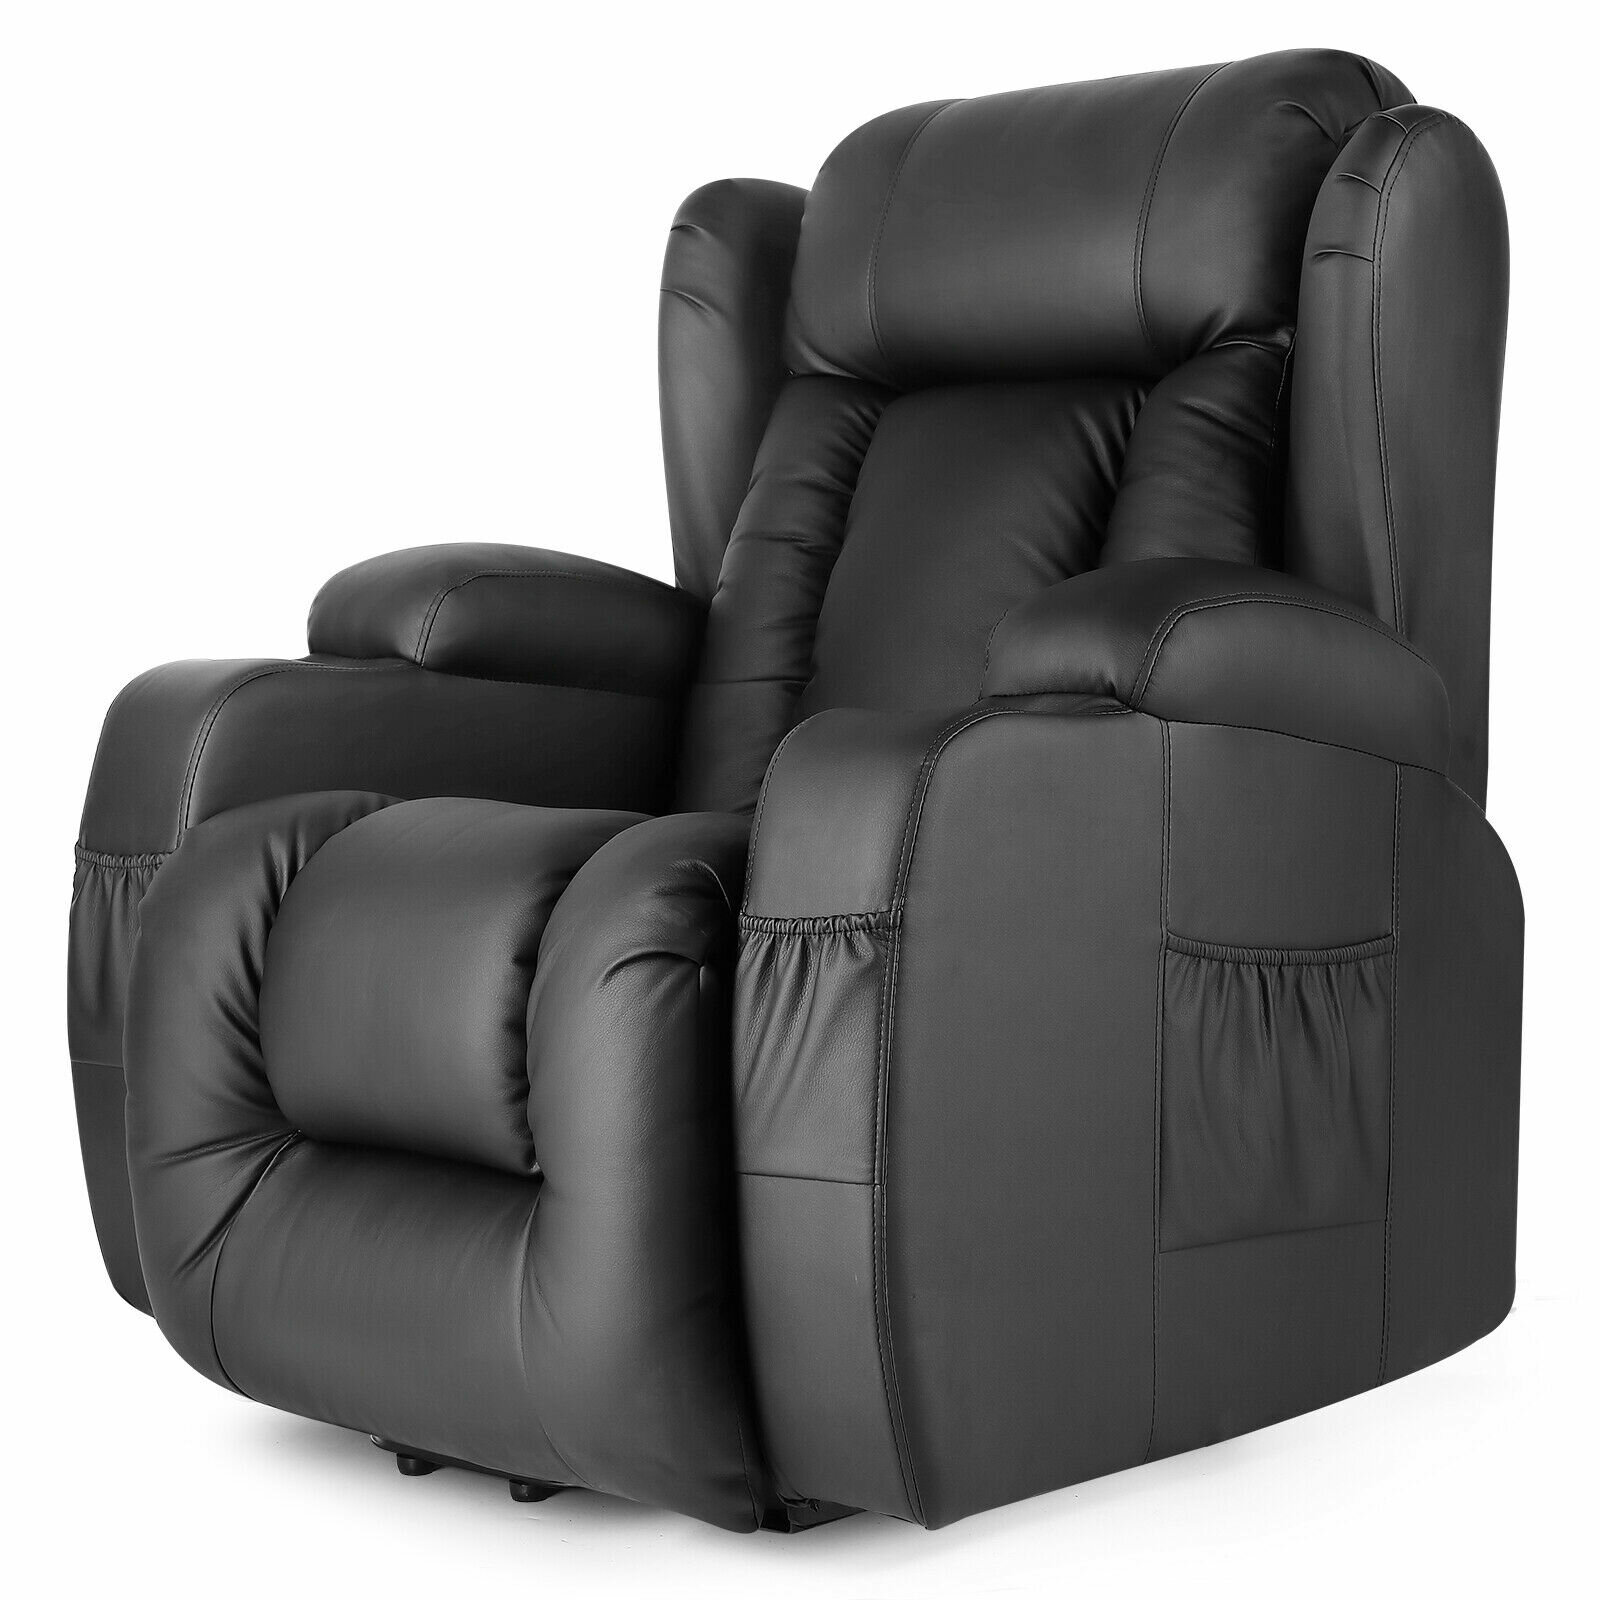 Latitude Run Beniamino Faux Leather Power Lift Assist Recliner With Massage With Heating Reviews Wayfair Ca